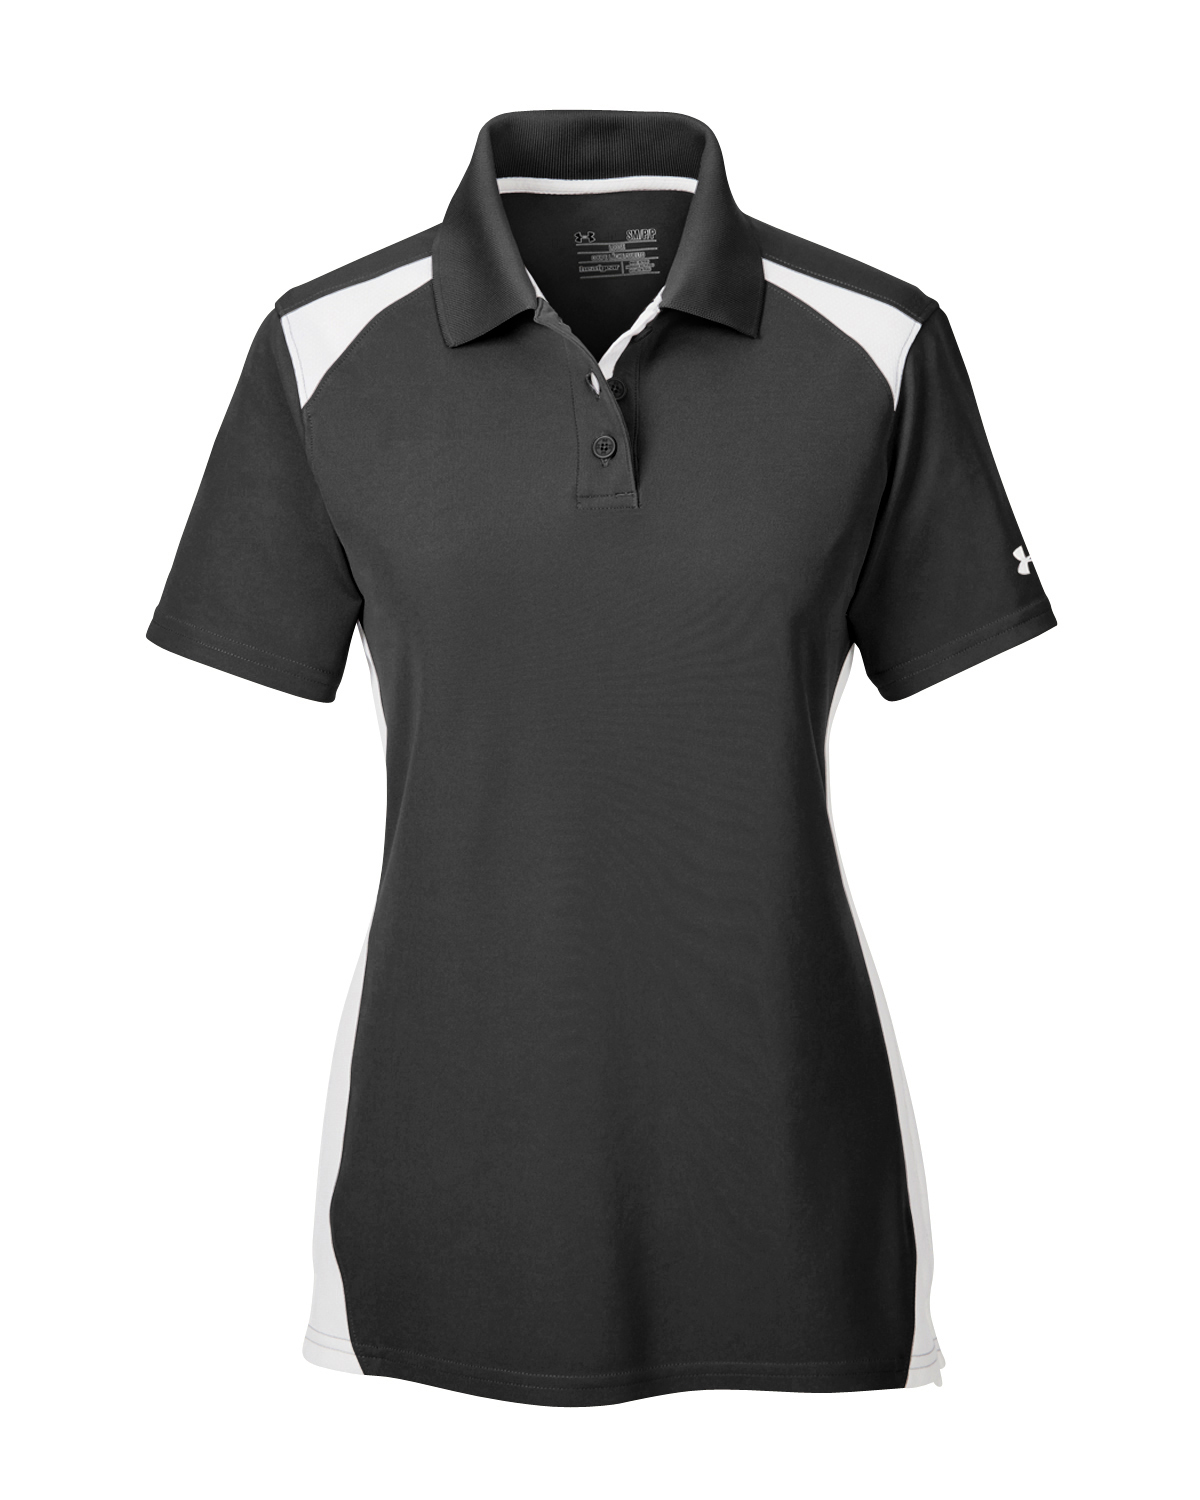 Under Armour 1283975 - Ladies' Team Colorblock Polo